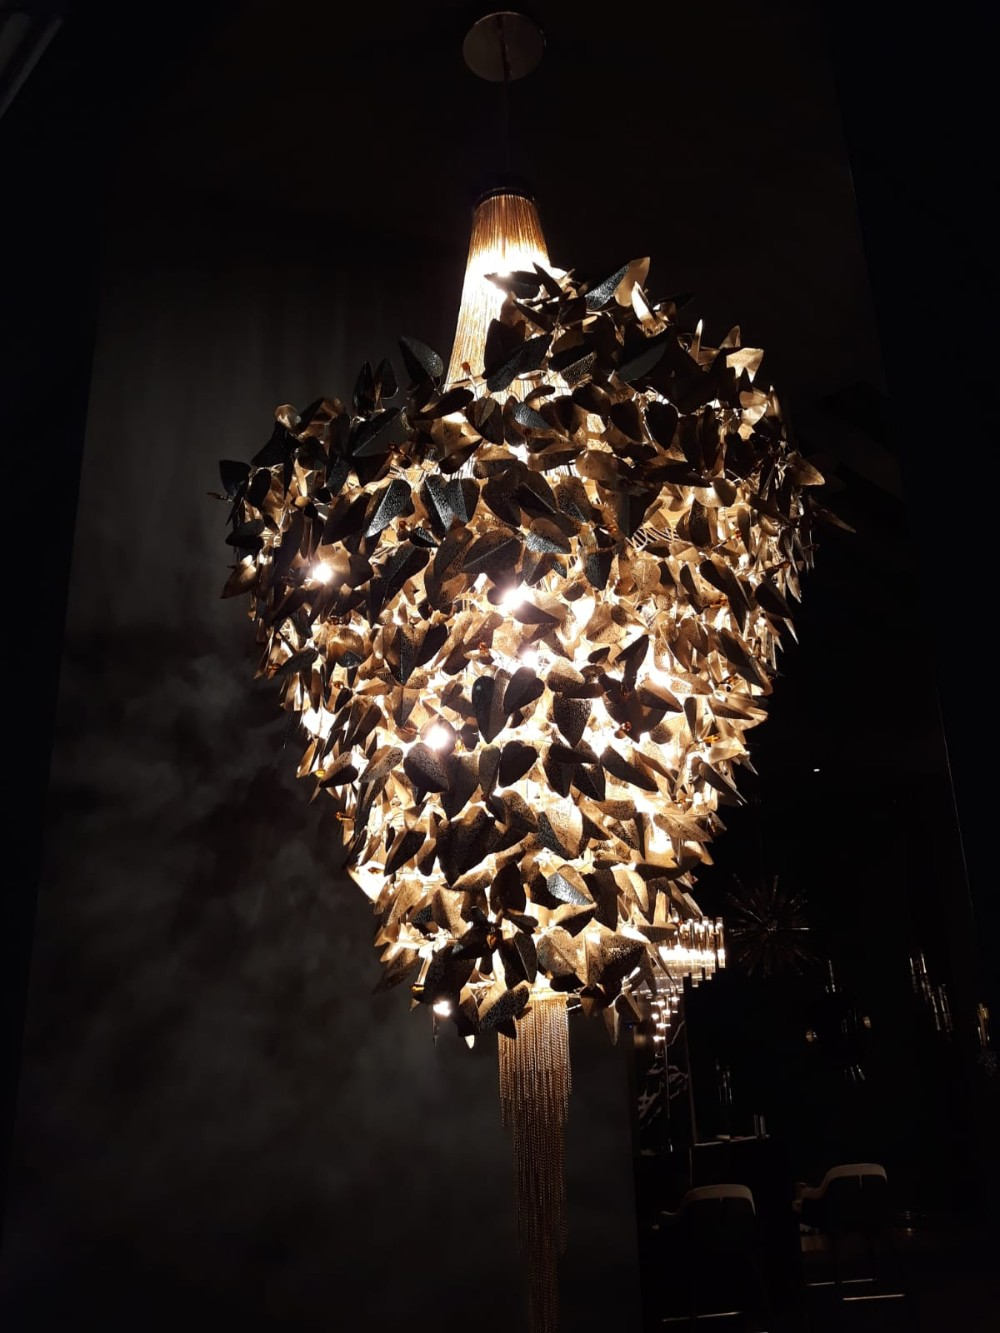 Discover LUXXU's New Lighting Designs At iSaloni 2019 05 new lighting designs Discover LUXXU's New Lighting Designs At iSaloni 2019 Discover LUXXUs New Lighting Designs At iSaloni 2019 05